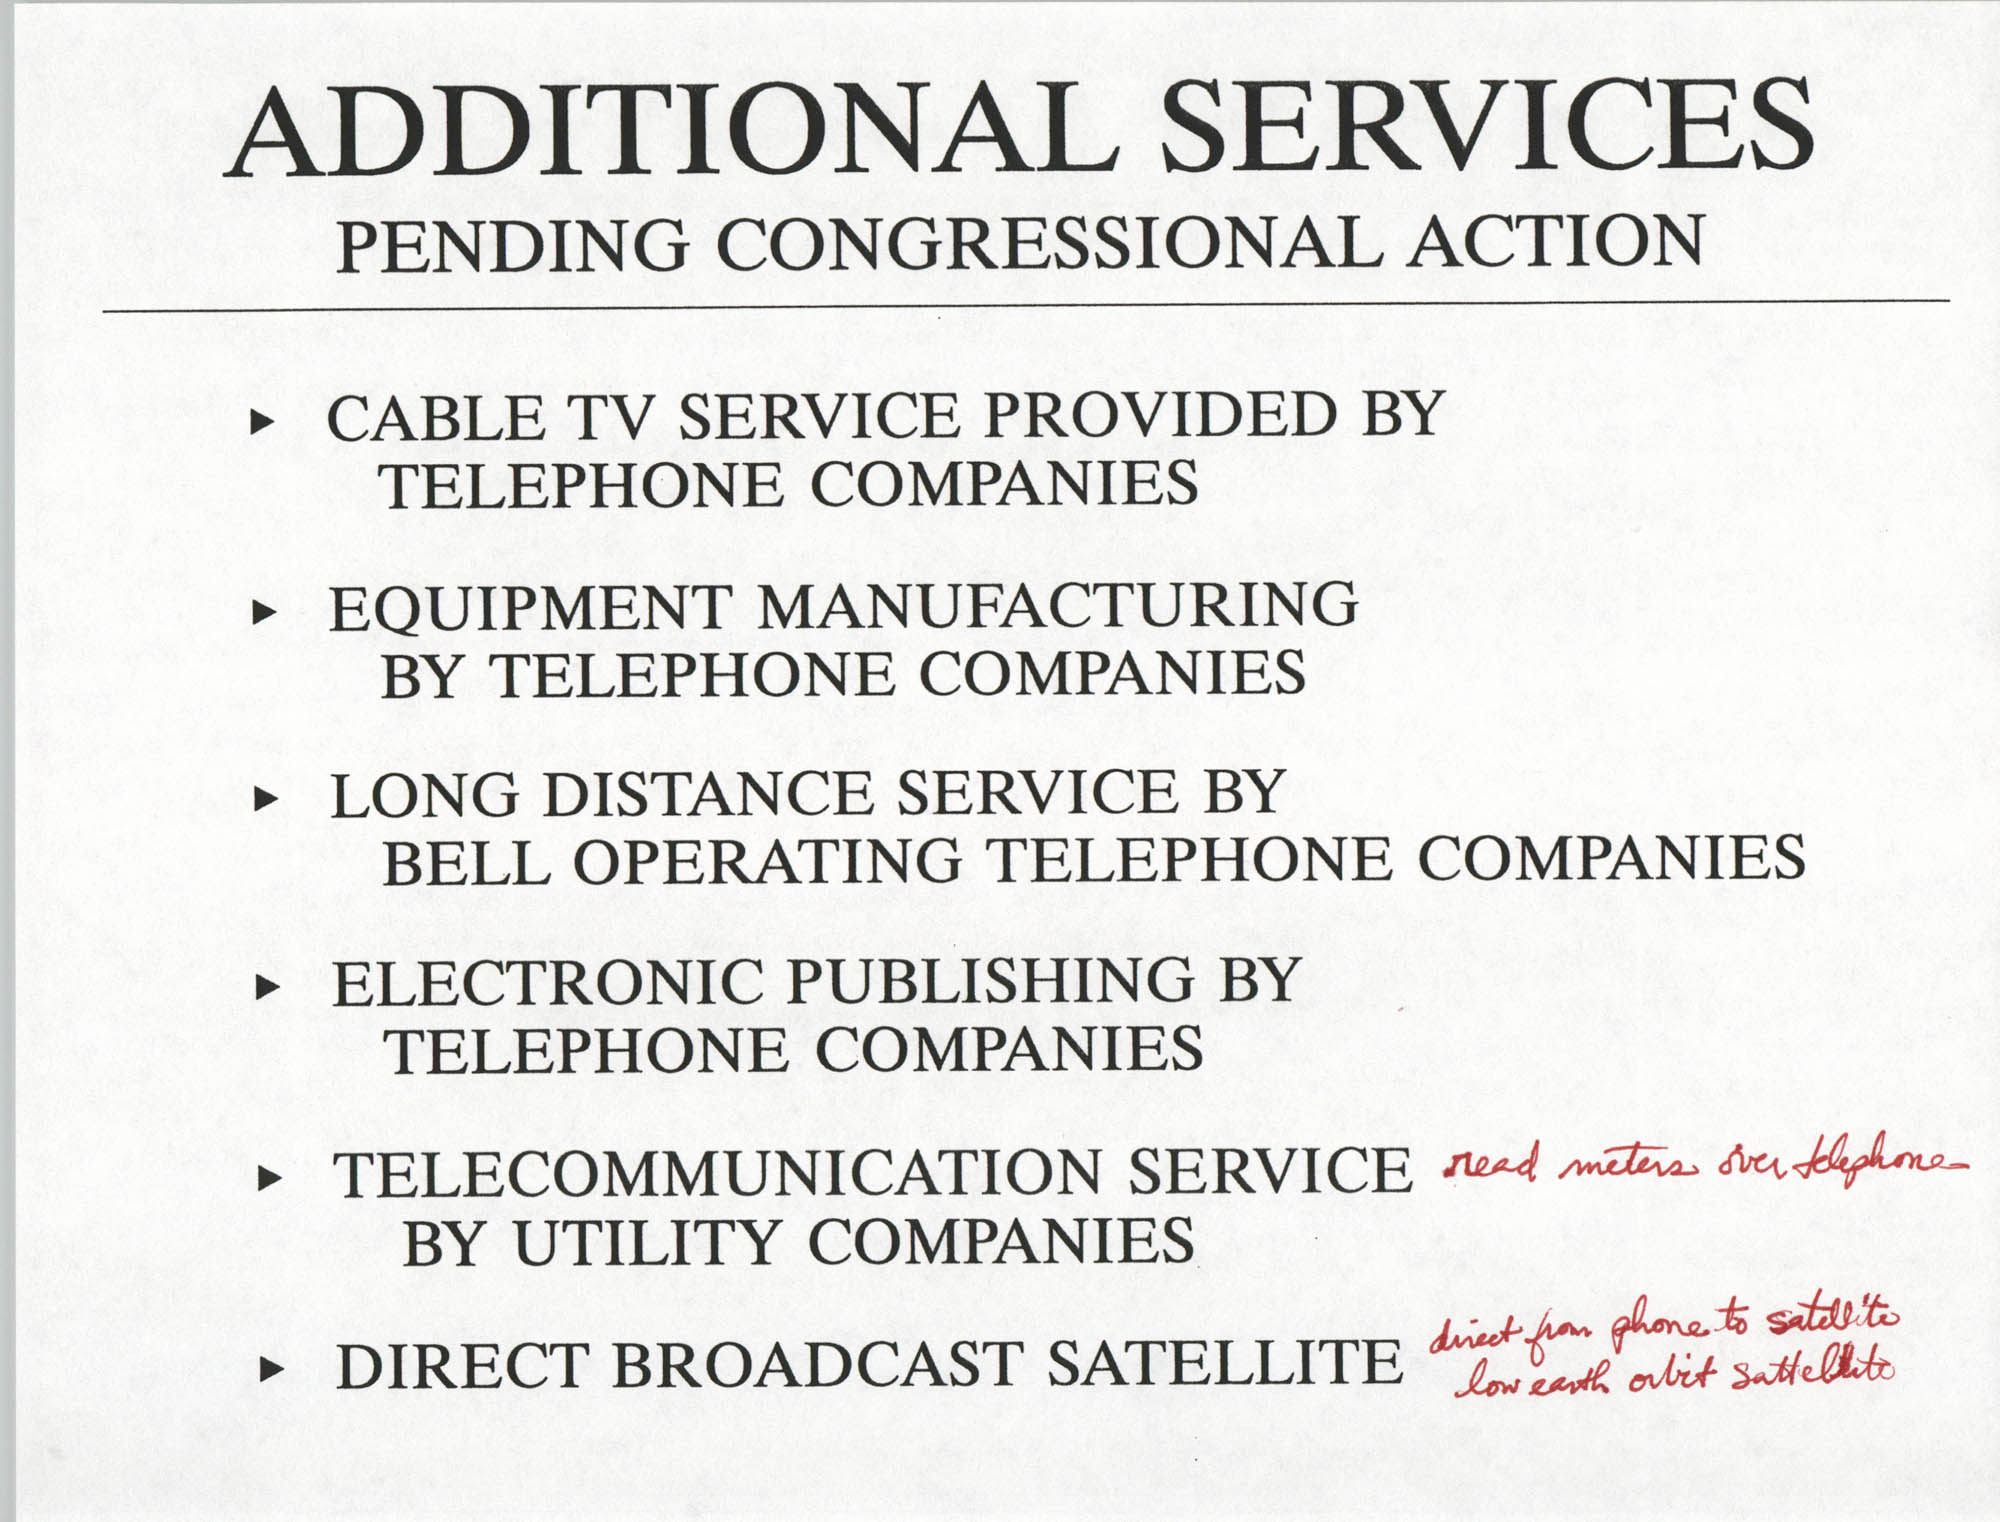 Developing an Agenda for the Information Superhighway, Anthony L. Pharr, May 20, 1994, Page 13